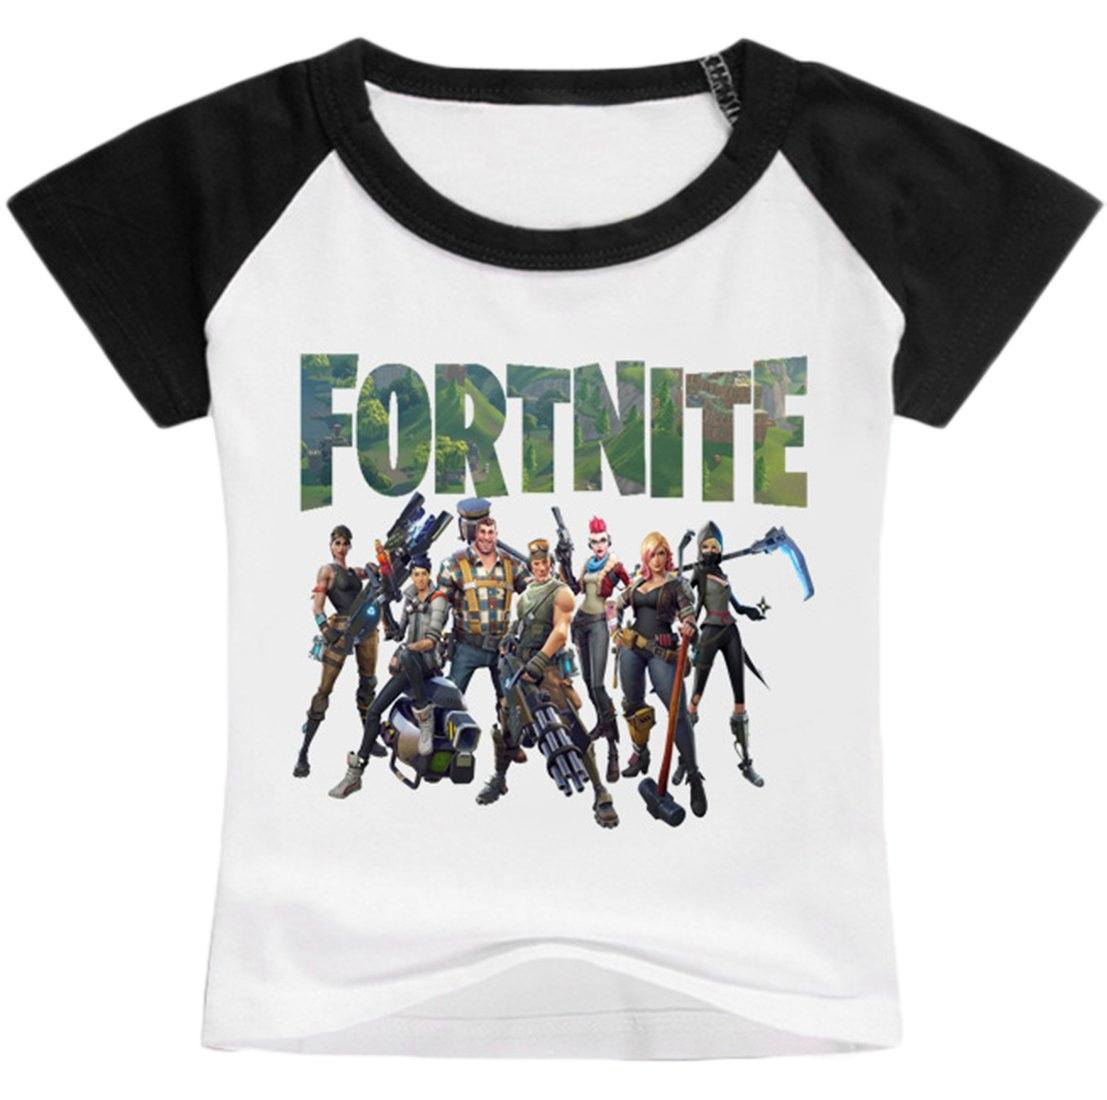 2018 Premium Fortnite  Printed Unisex T-shirt Summer Novelty Kid's shirt Short Sleeve Shirt BT